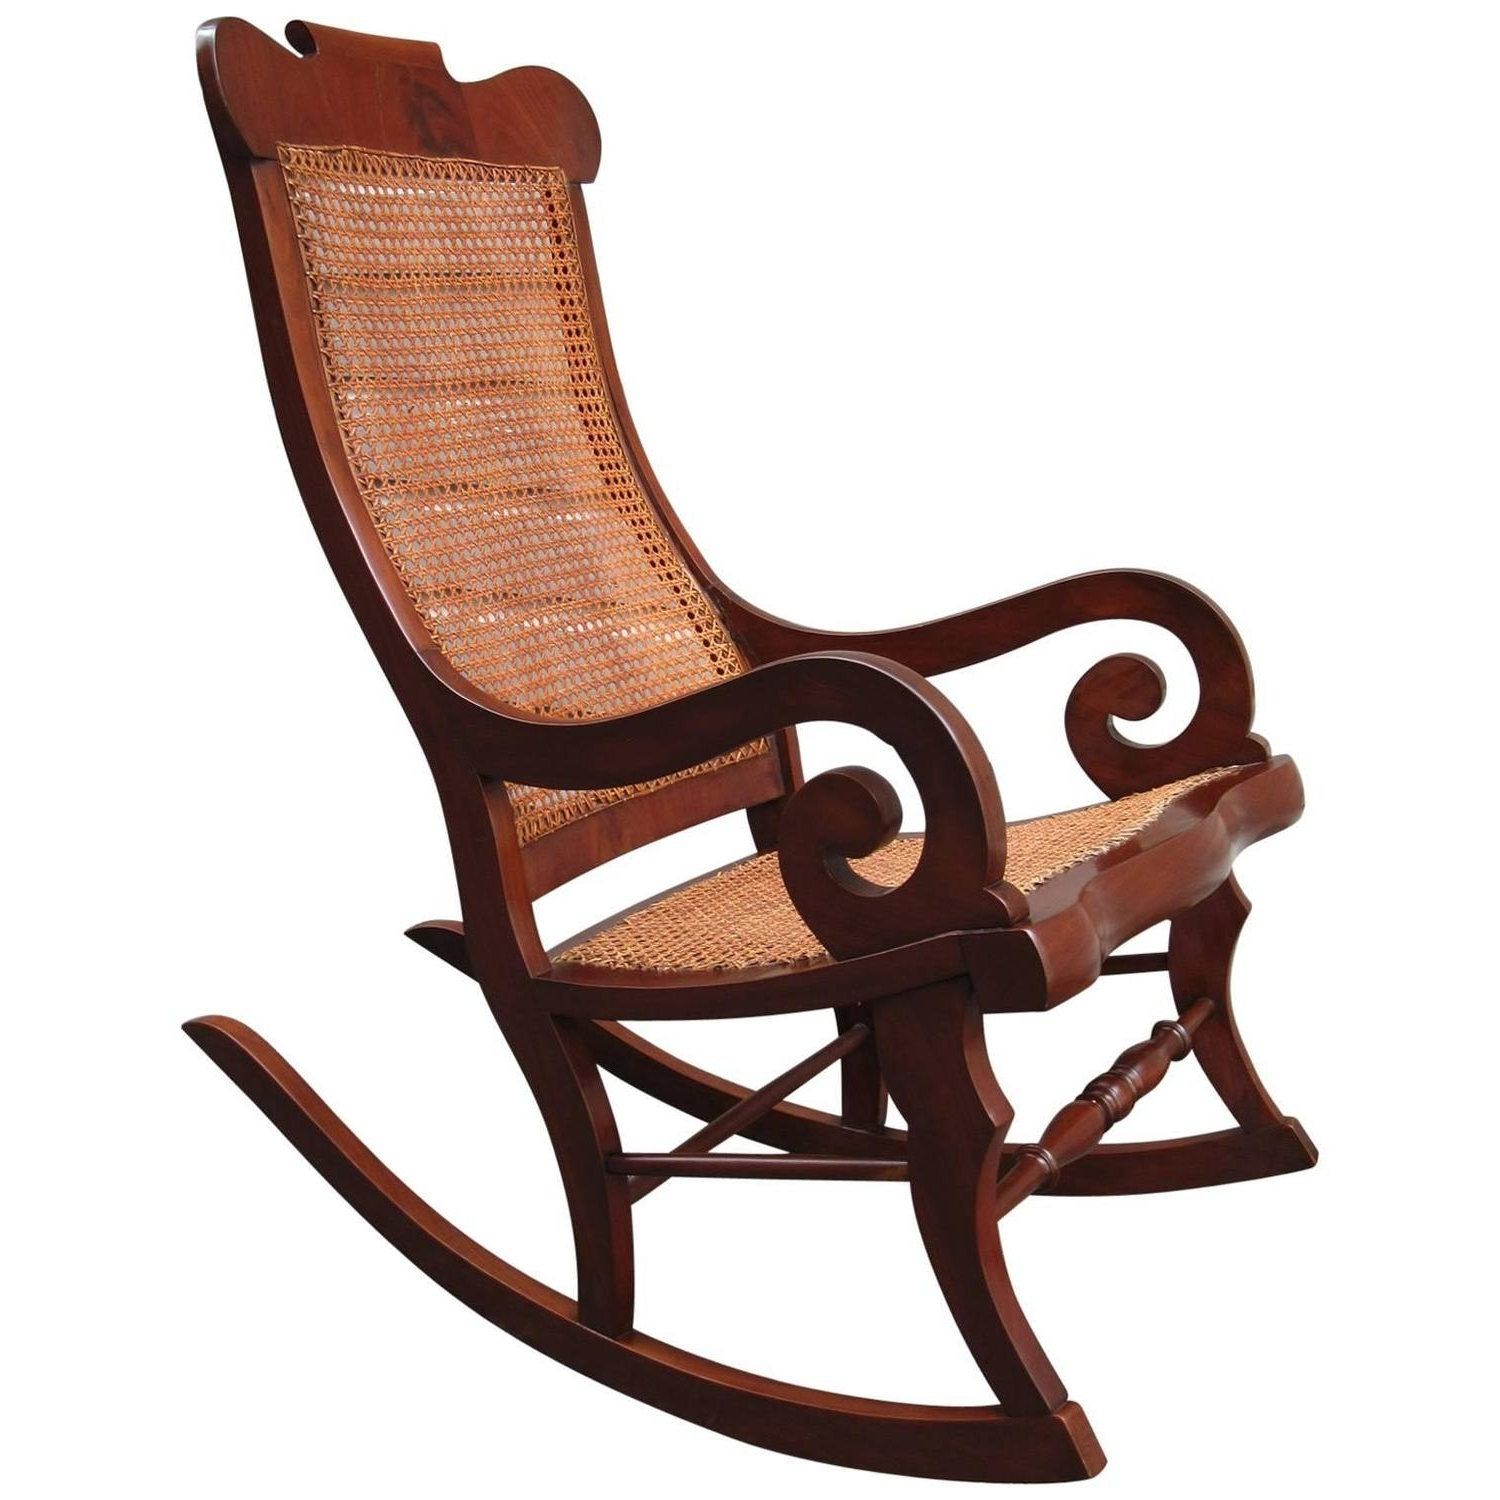 Well Liked 19Th Century Rocking Chairs – 82 For Sale At 1Stdibs Regarding Old Fashioned Rocking Chairs (View 14 of 15)